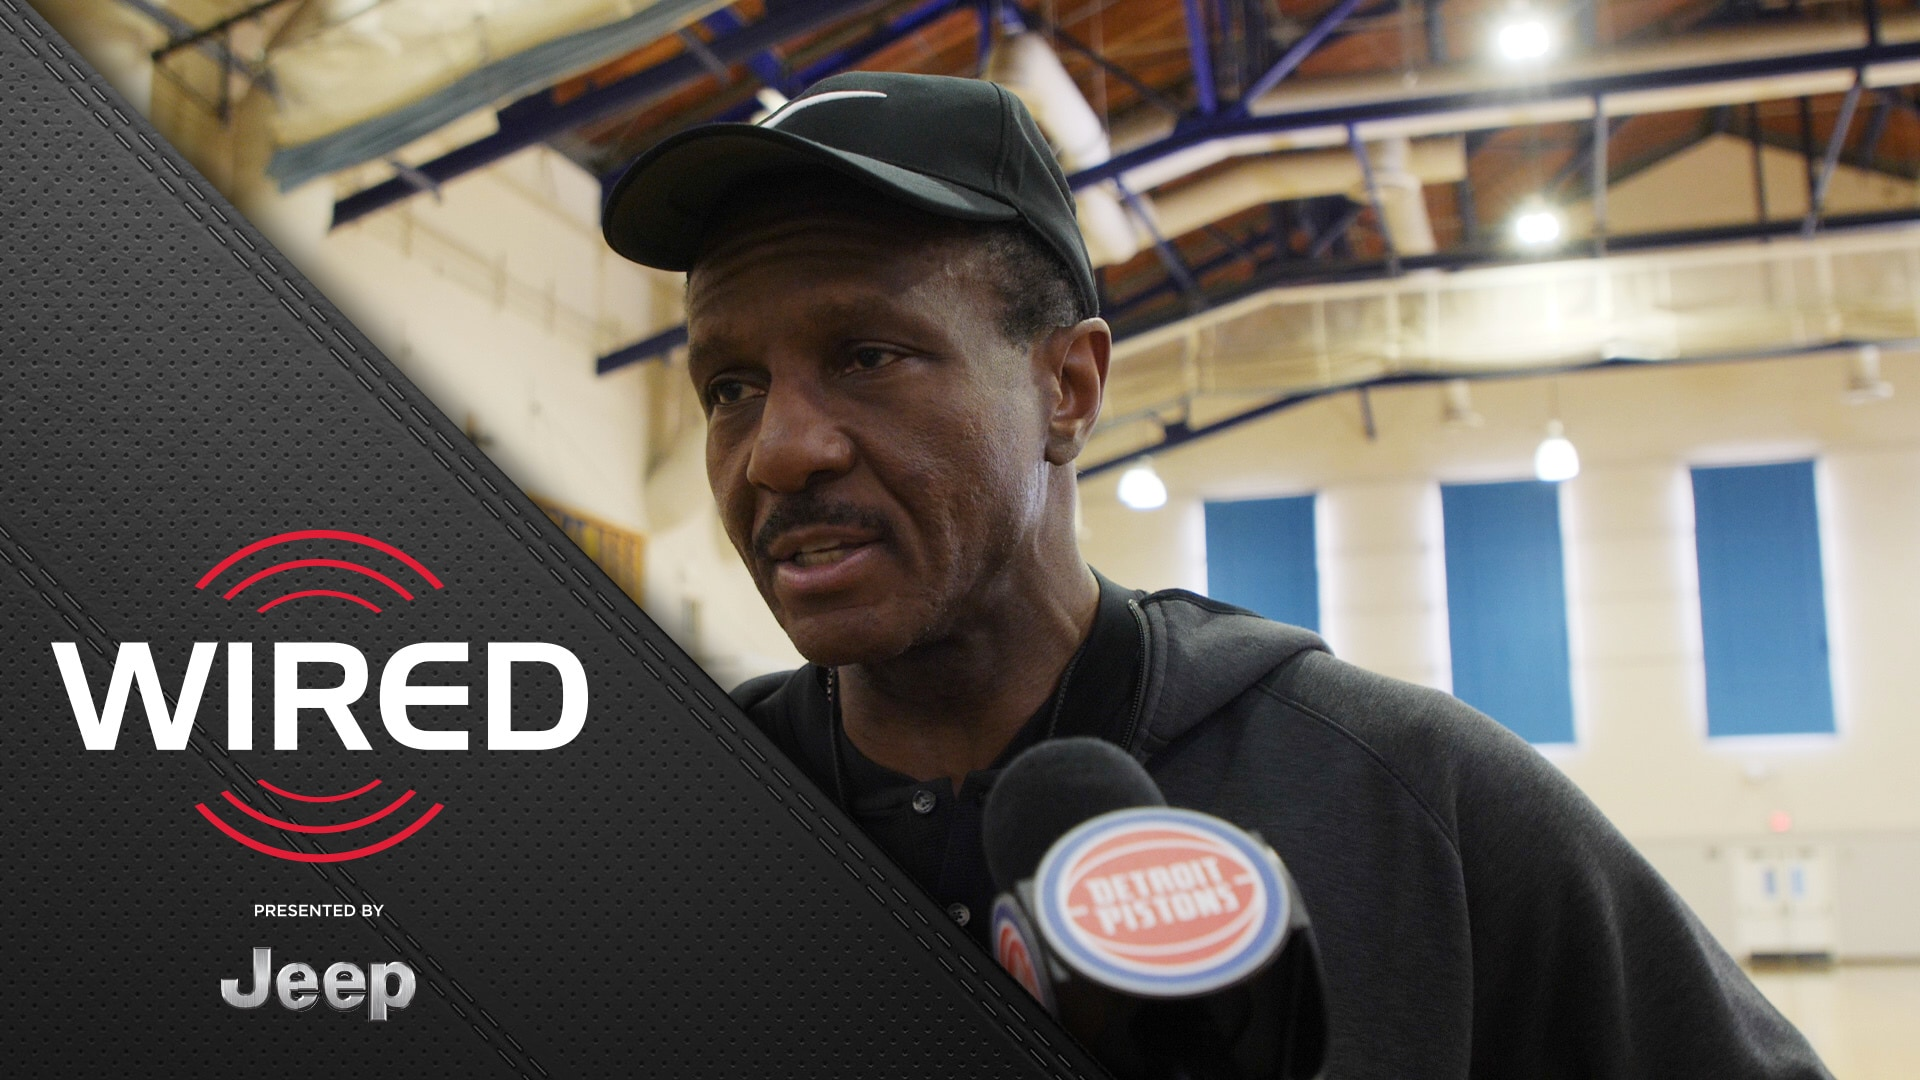 Wired, pres. by Jeep: Jan. 3 Practice - Coach Casey